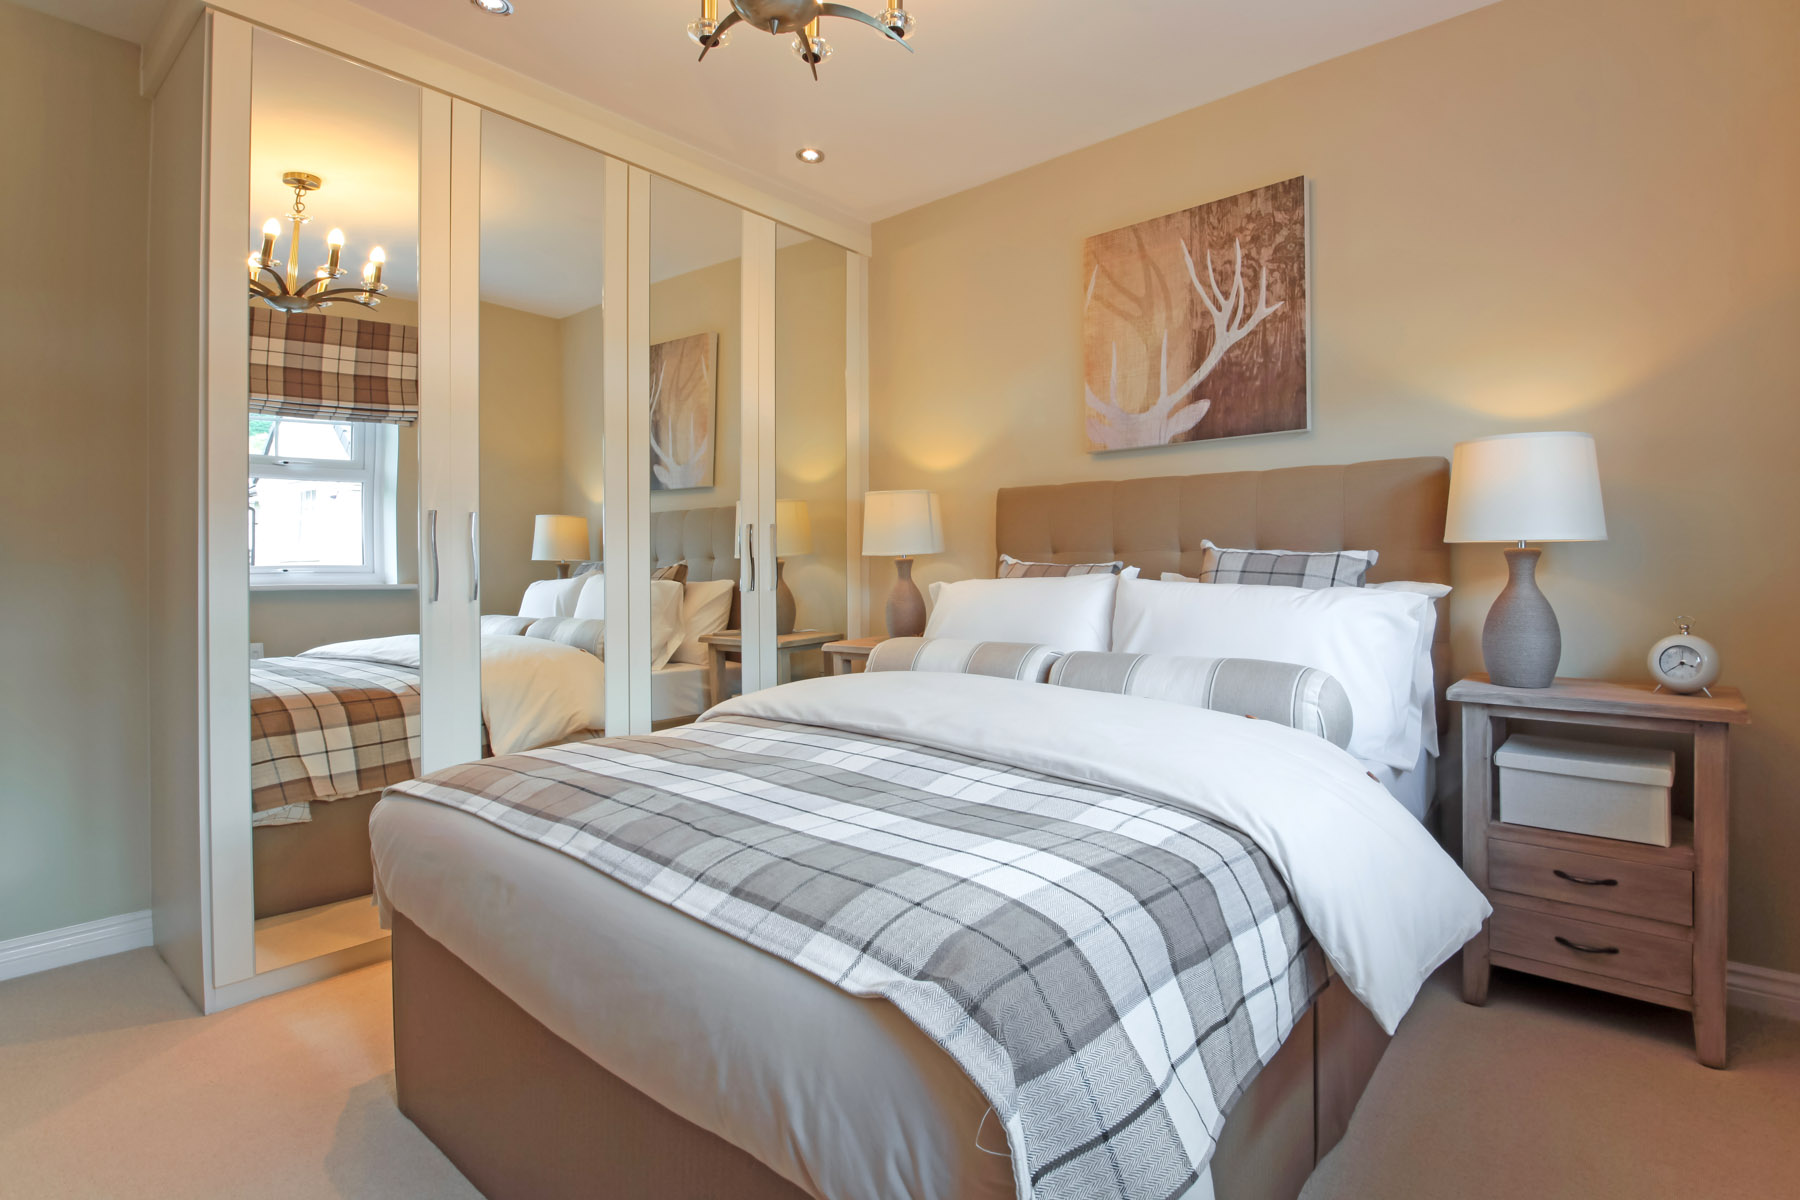 019_DMV_Lydford_Bedroom_2